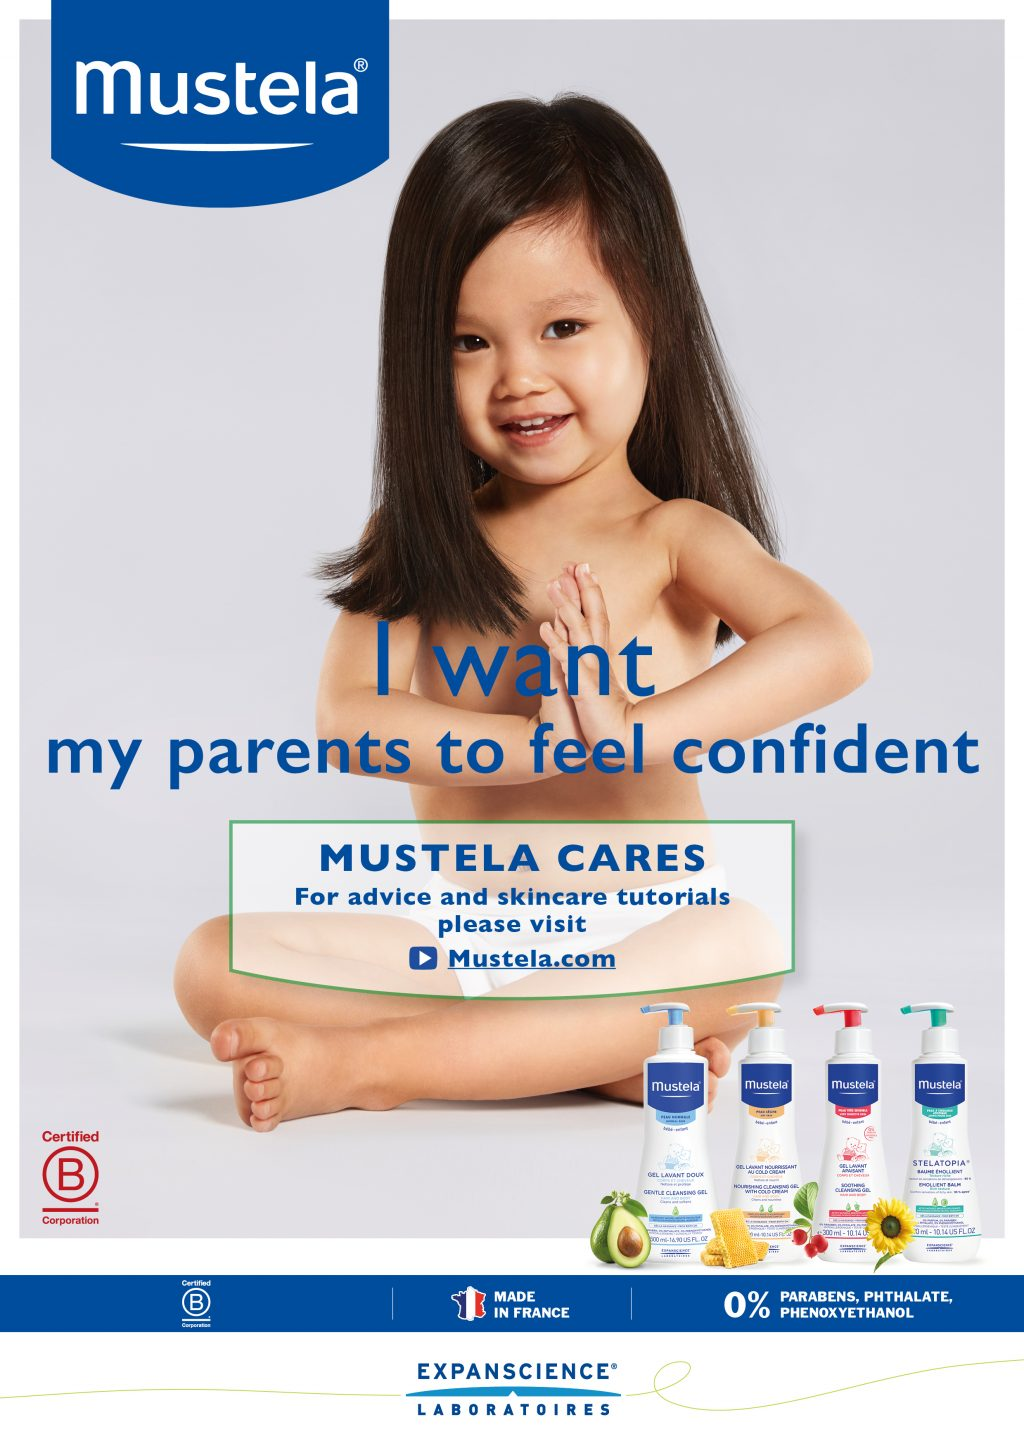 Hair and make up Baby skin mustela mua care